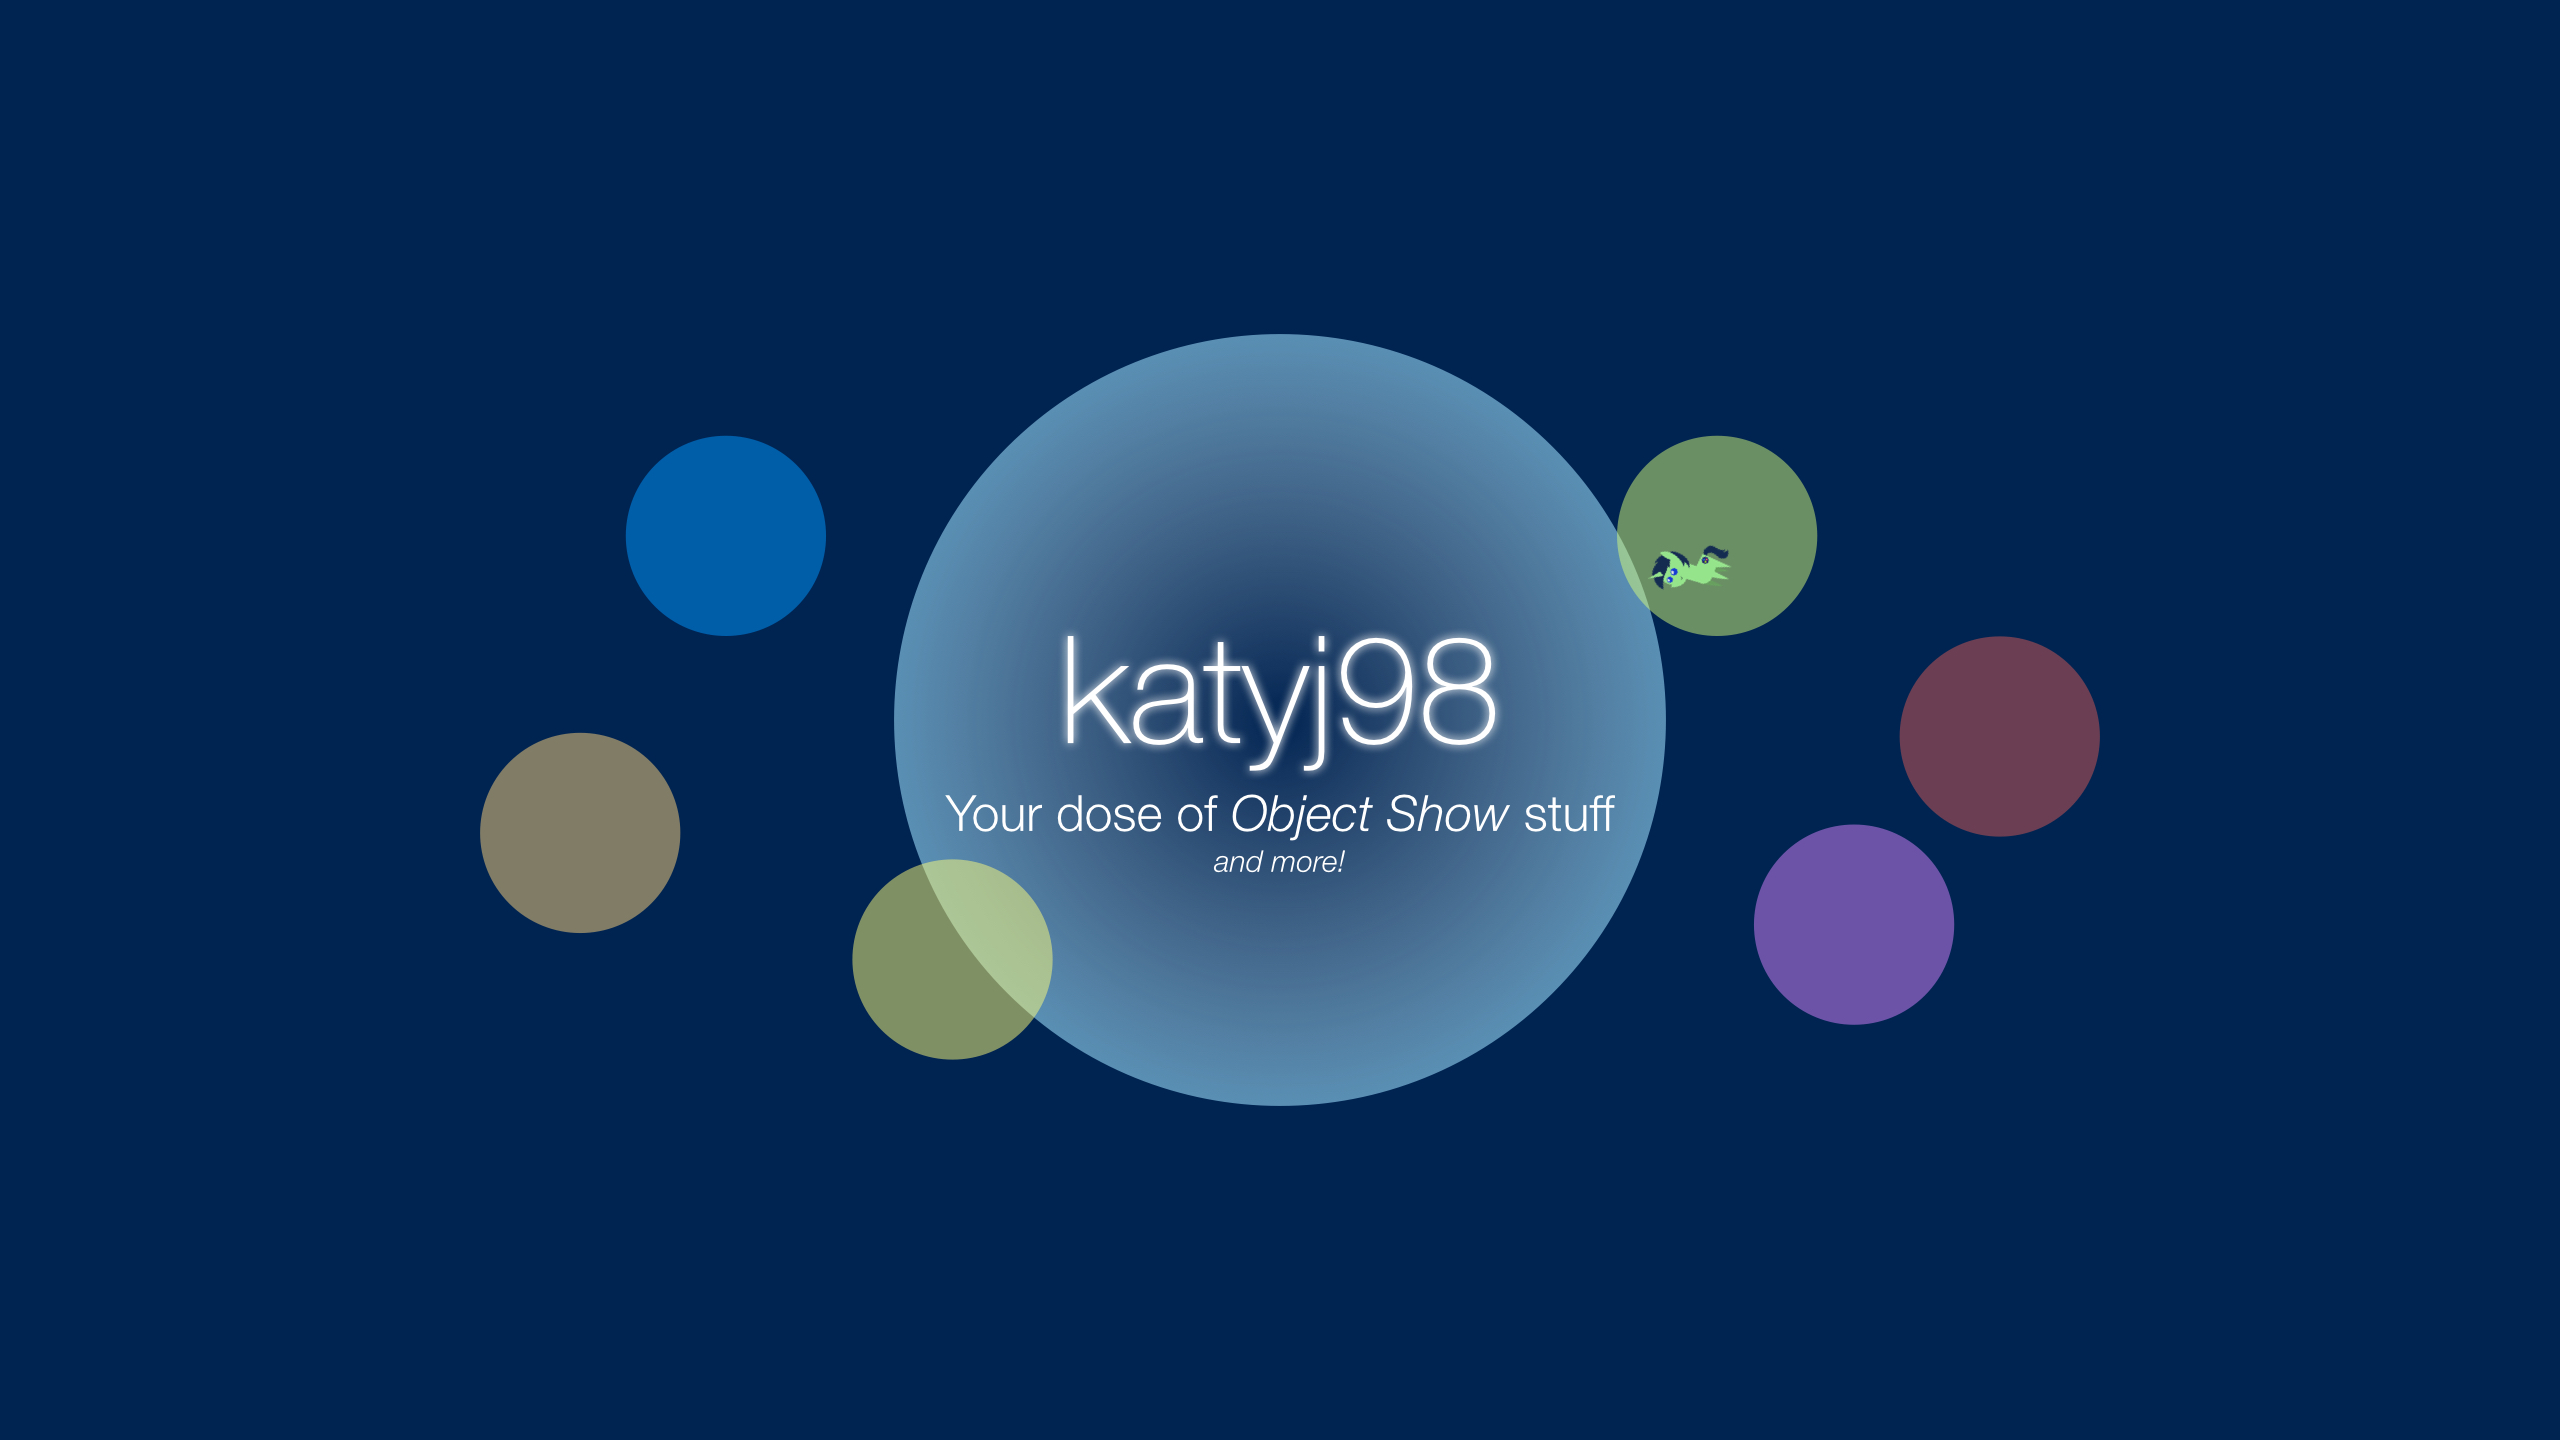 katyj98 New Channel Art for 2015! by kitkatyj on DeviantArt